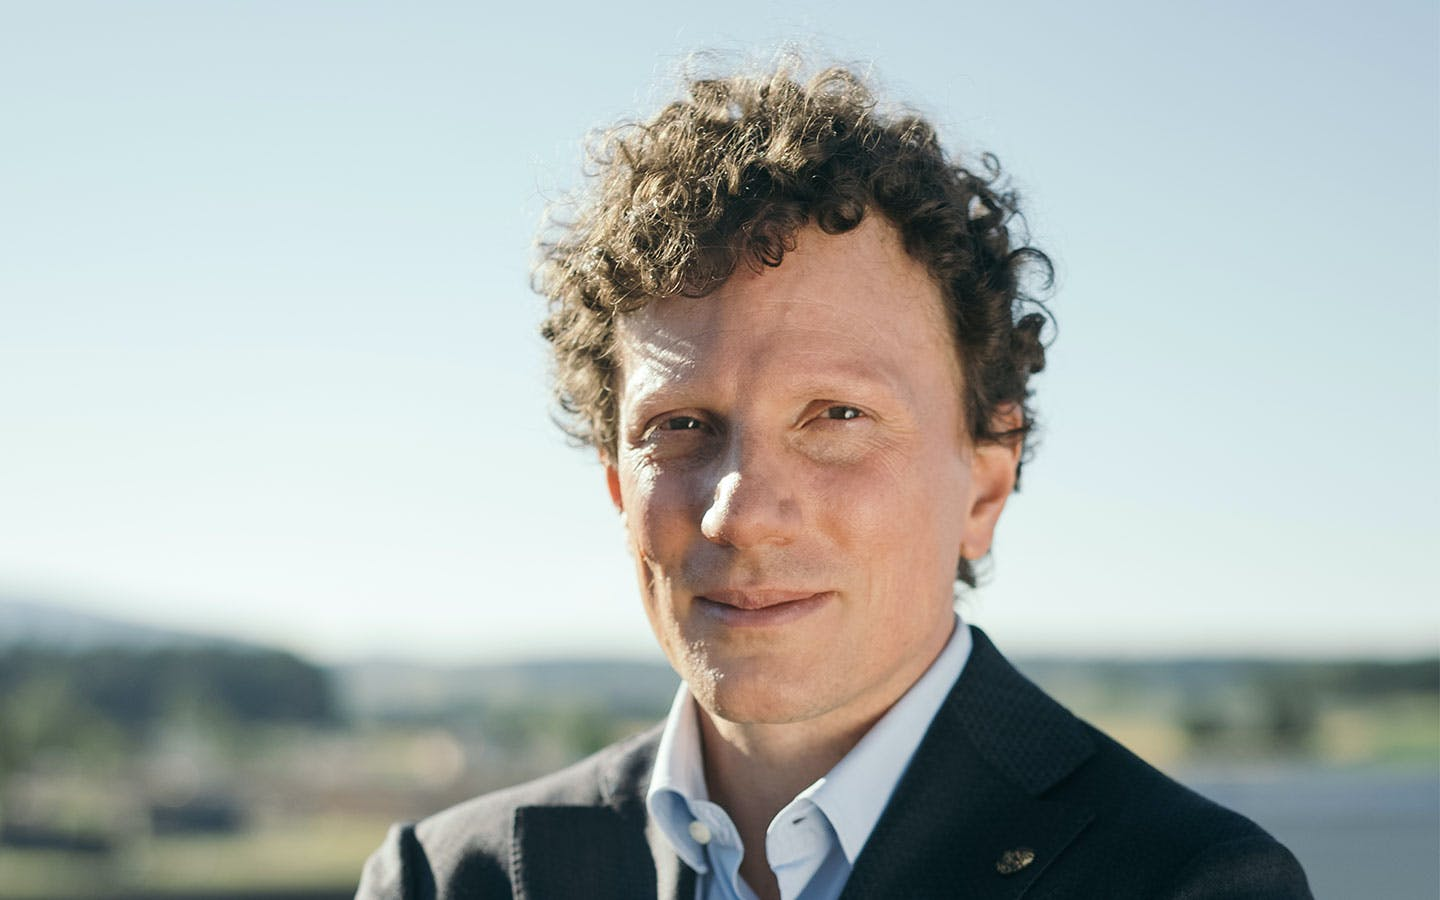 Christoph Gebald, co-CEO and co-founder of Climeworks